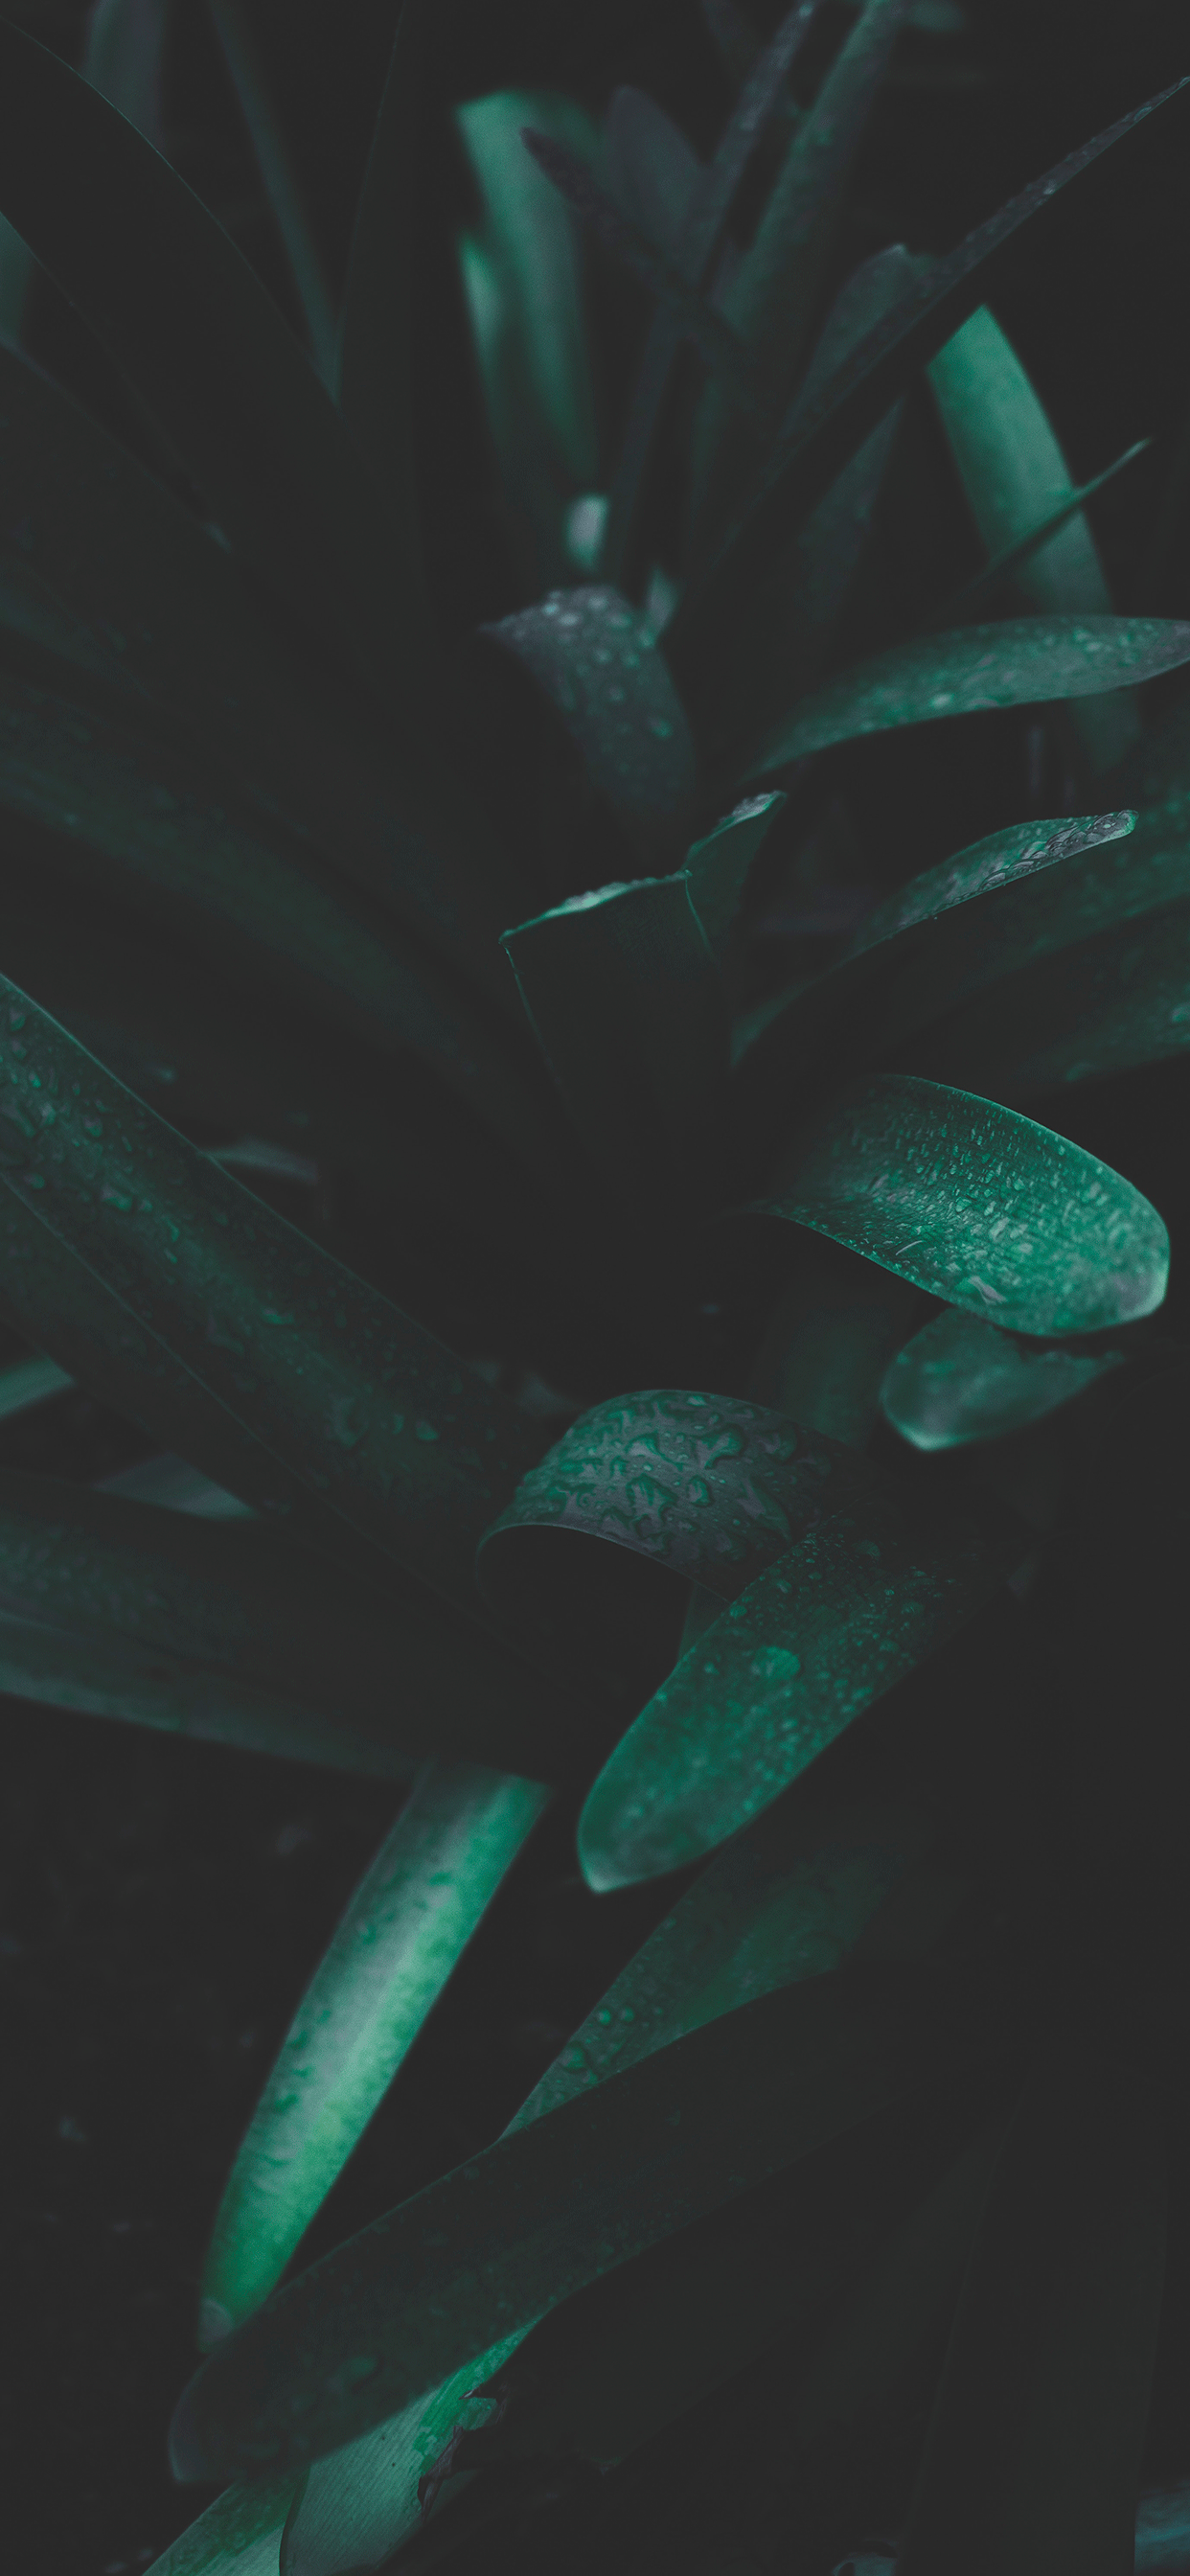 iPhone wallpapers plants darker Fonds d'écran iPhone du 13/06/2019